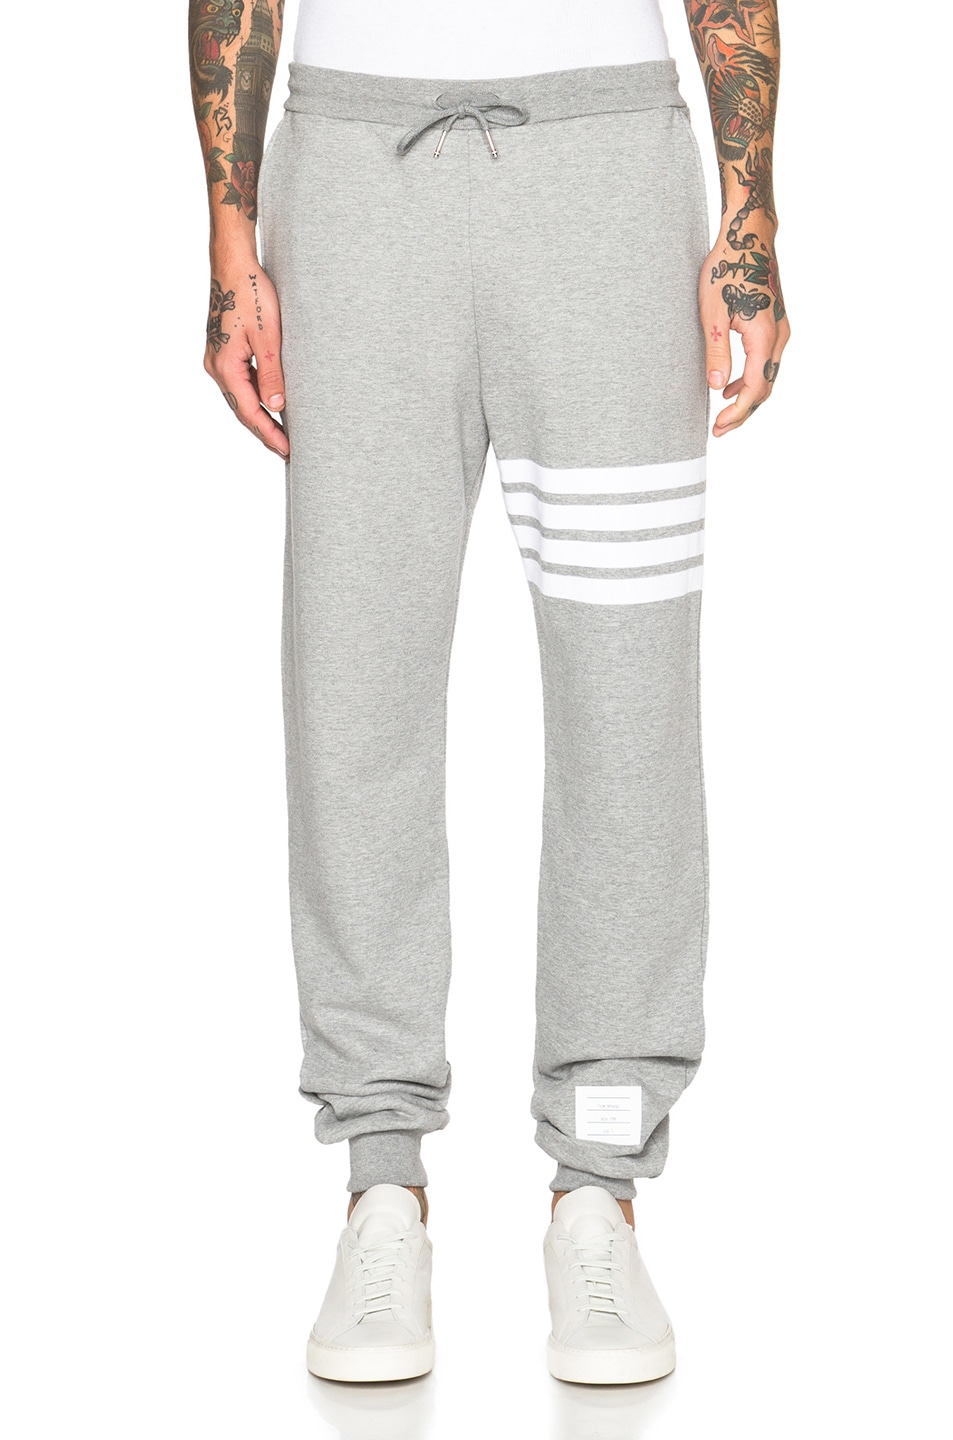 THOM BROWNE Classic Drawstring Sweatpants With Stripe Detail, Light Gray/Optic White